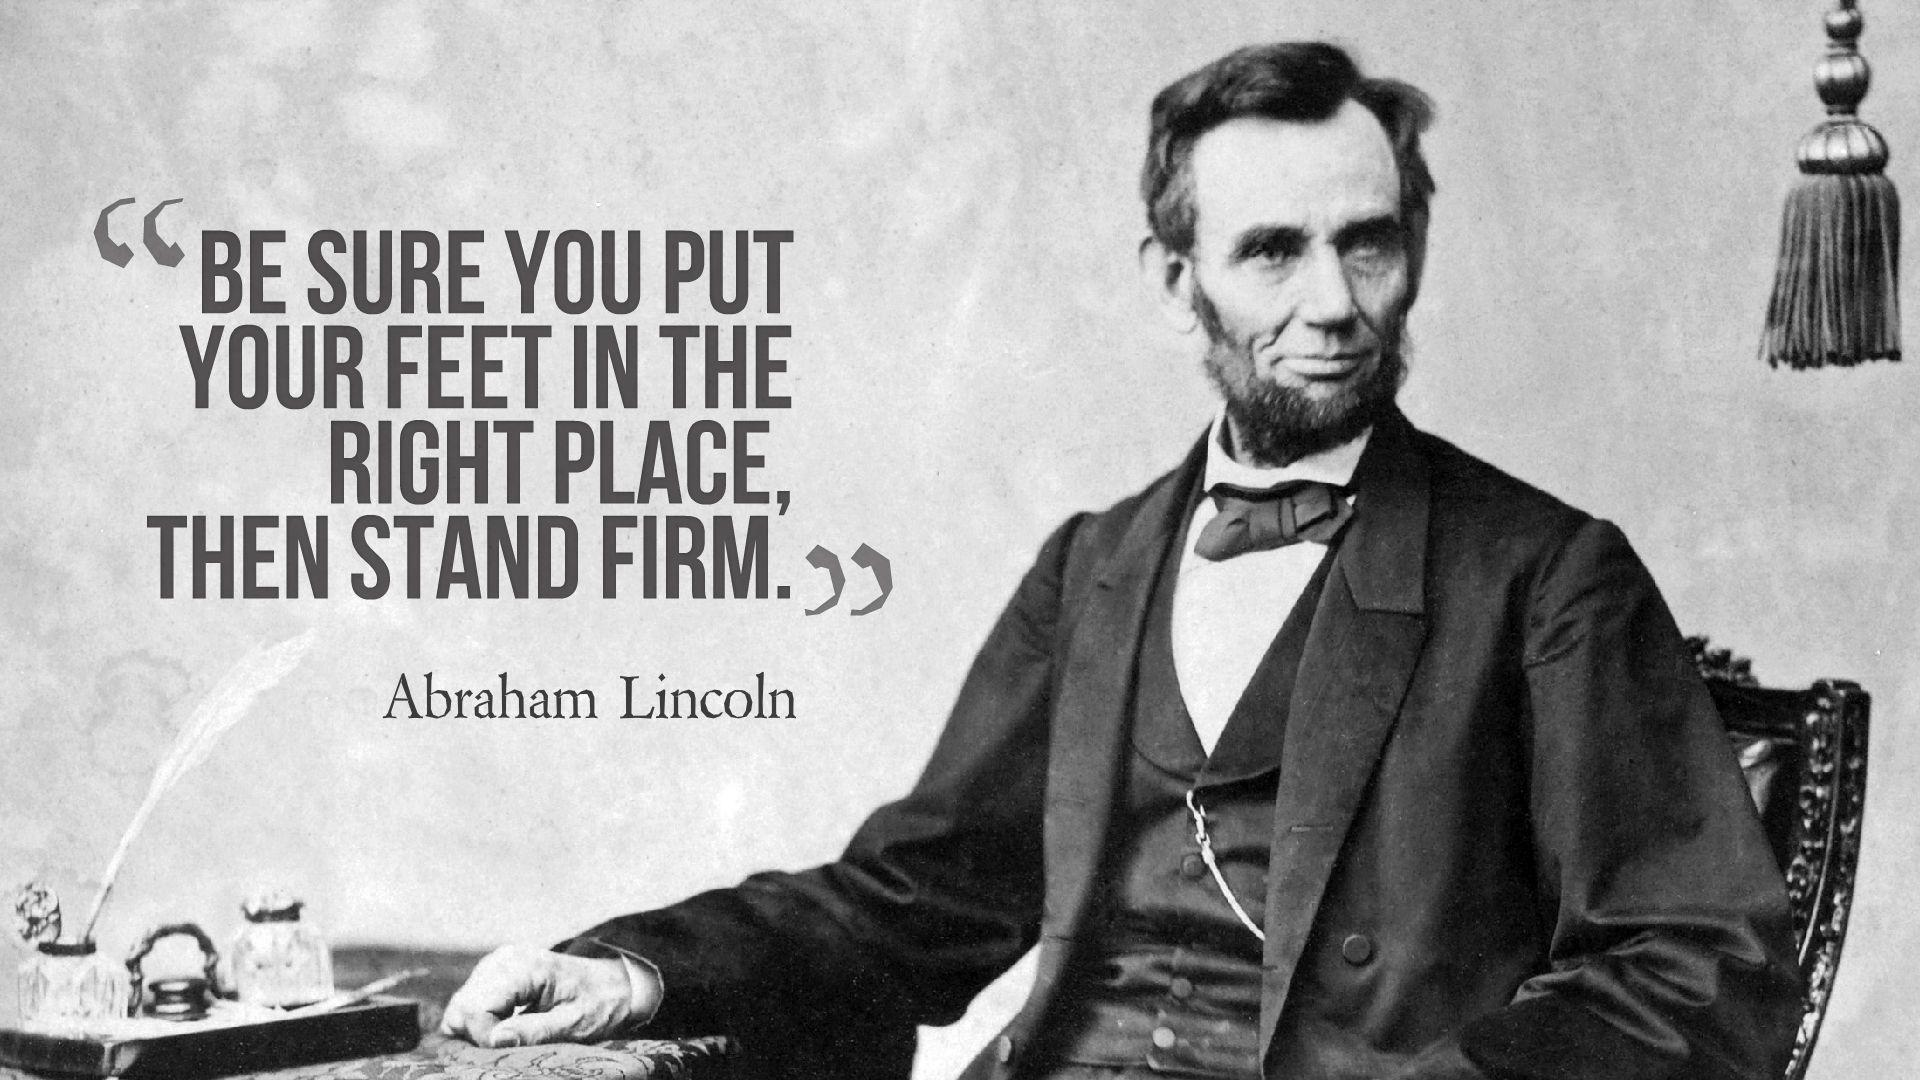 Abraham Lincoln Quotes Background Wallpaper 13771 - Baltana